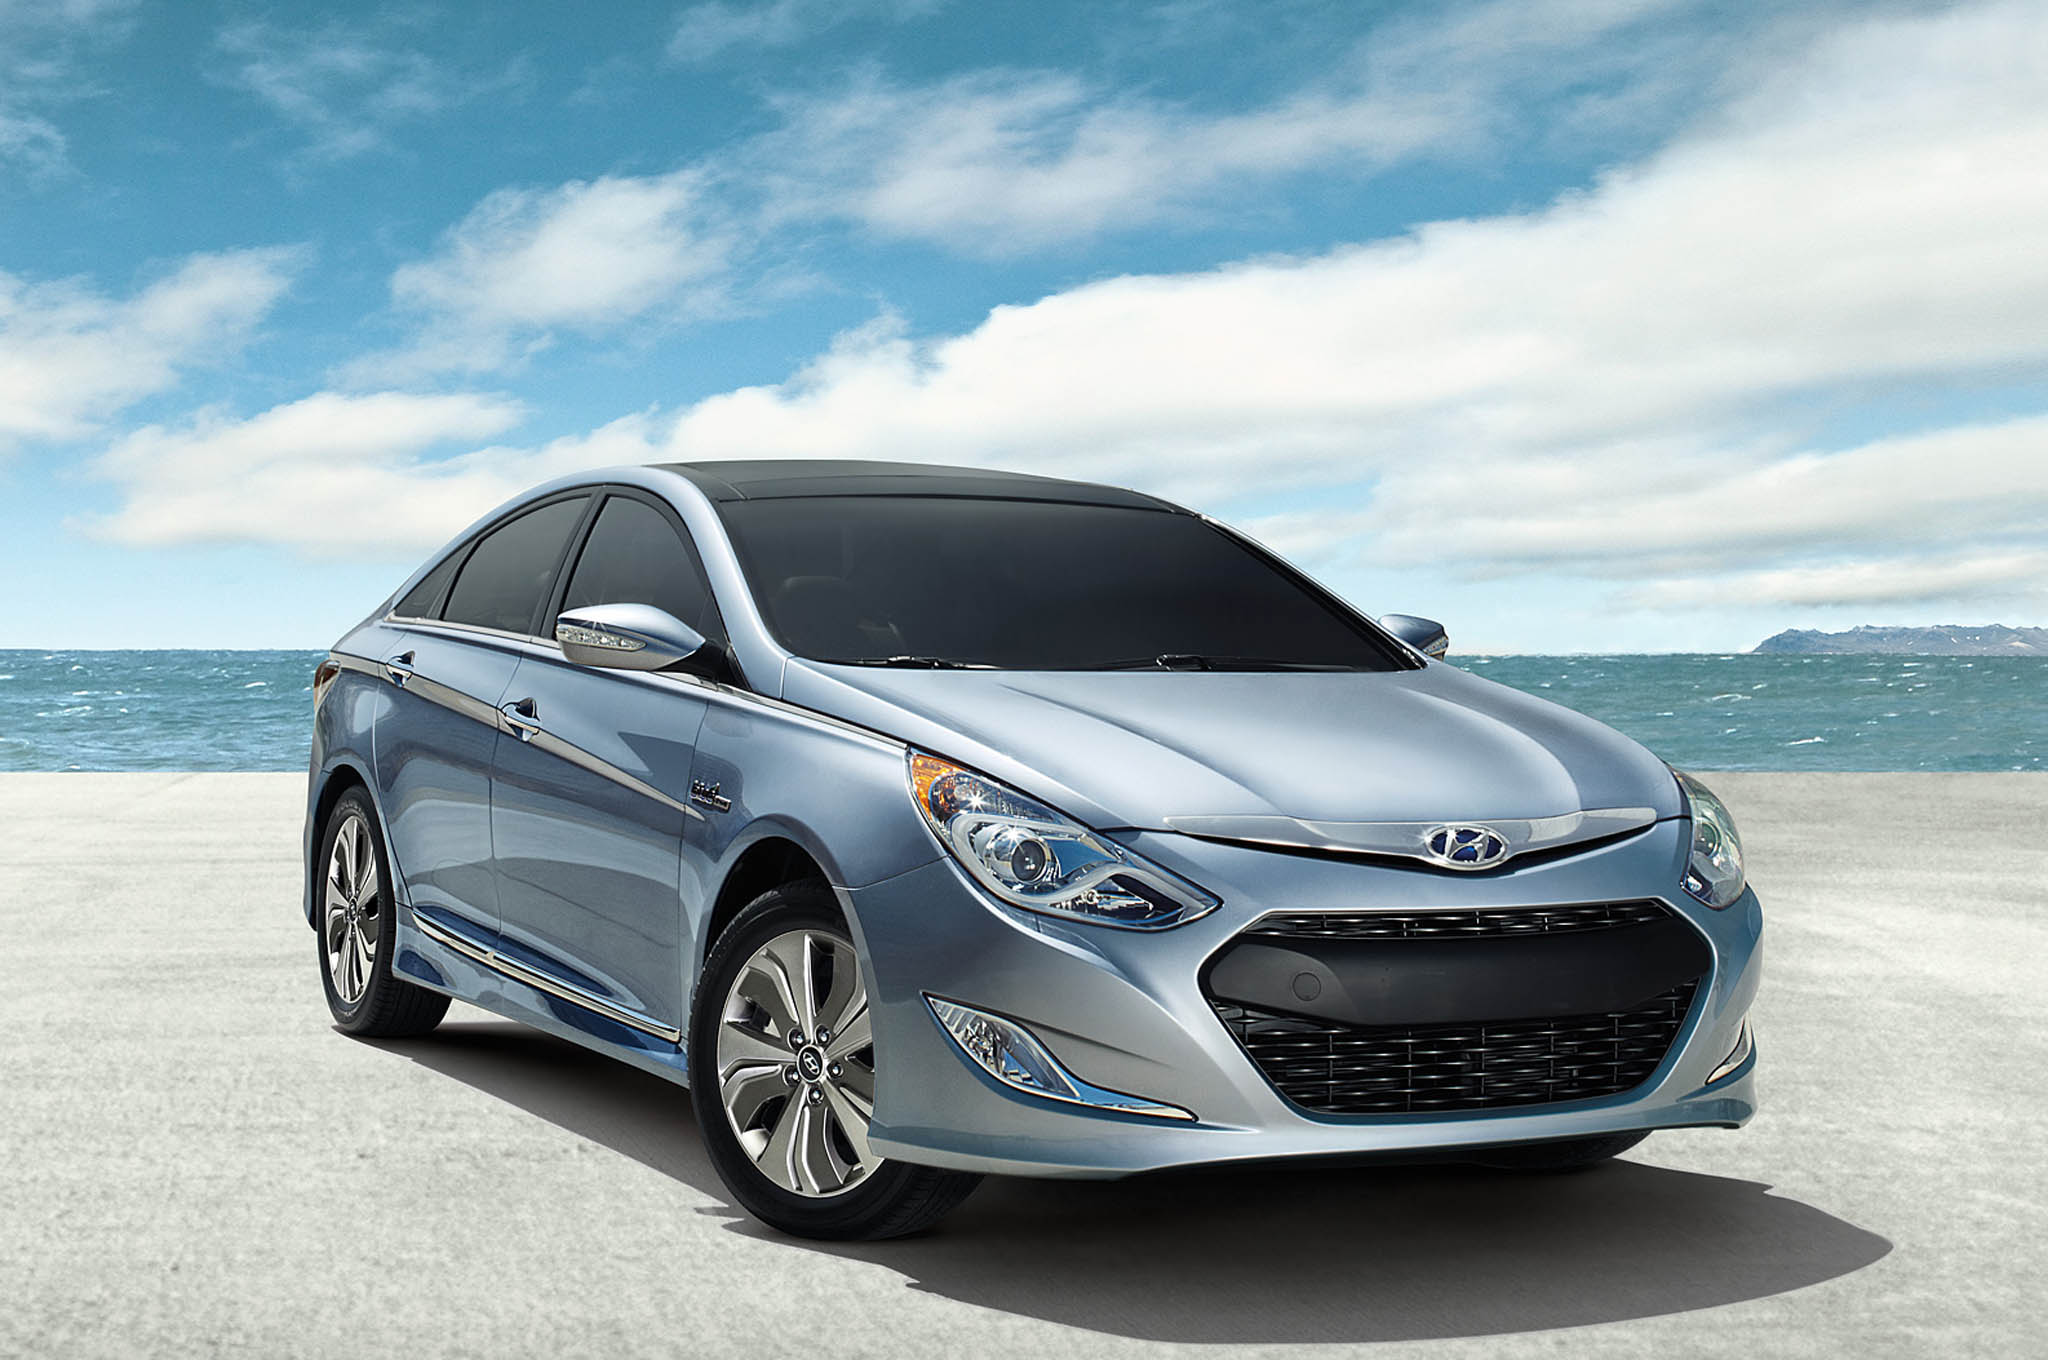 outgoing hyundai sonata hybrid continues for 2015 model year. Black Bedroom Furniture Sets. Home Design Ideas